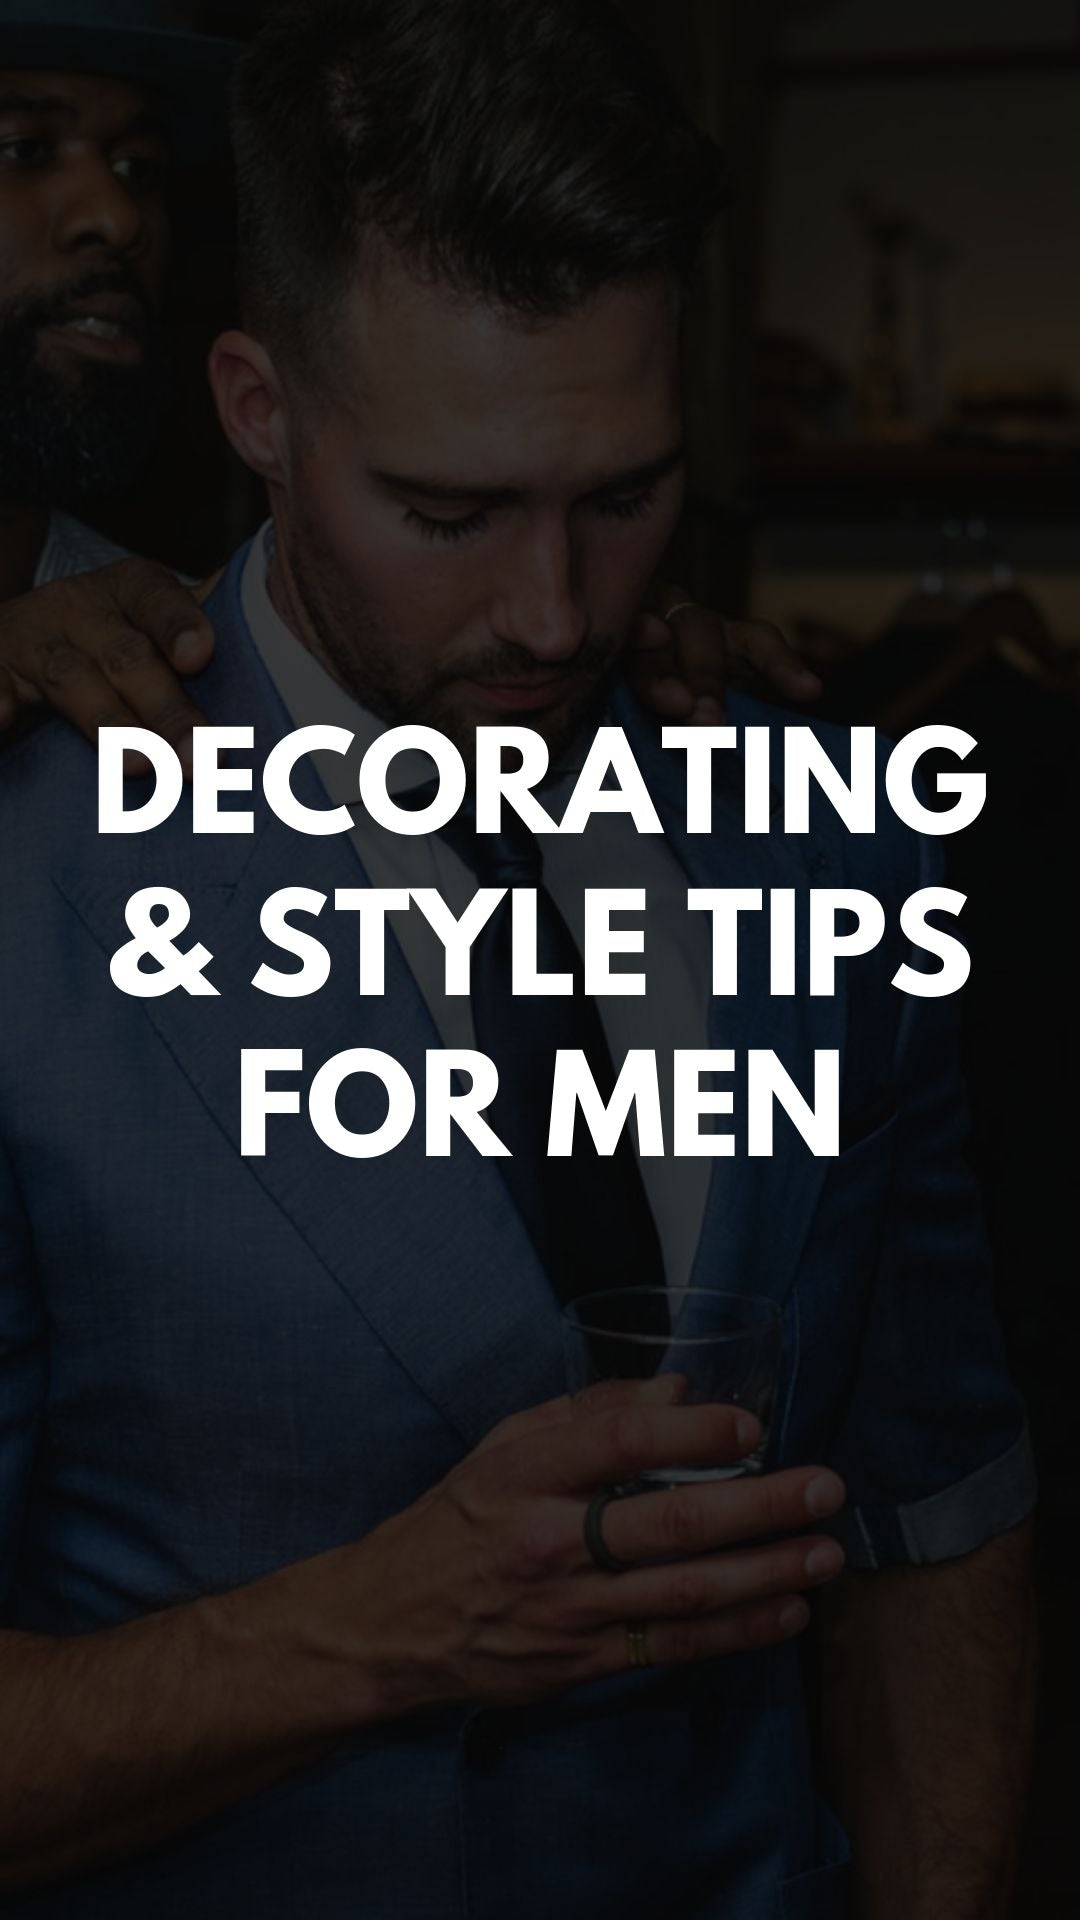 Decorating & Style Tips for Men